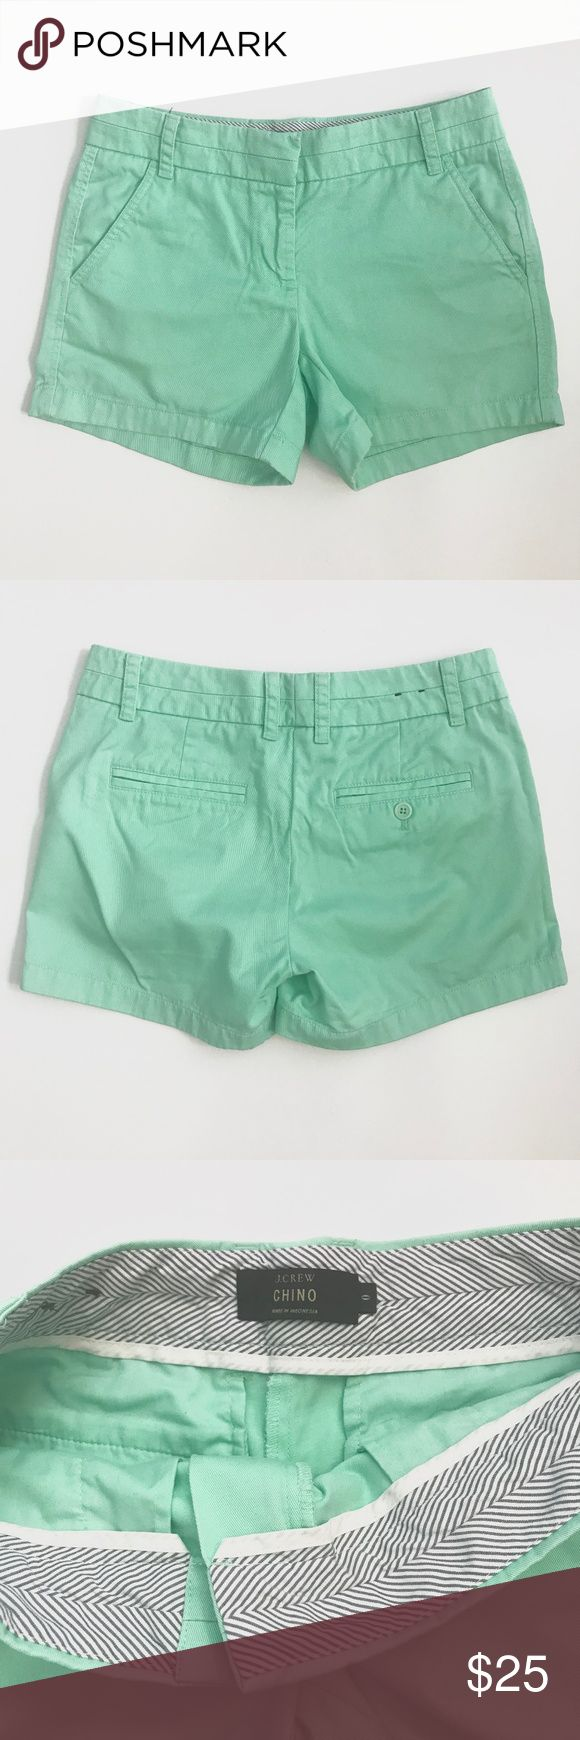 "J. Crew Chino Mint Green Shorts 0 J. Crew Chino Mint Green Shorts, Size 0, EUC, Smoke Free Environment.   Measurements are approx.   Front Rise: 8"" Inseam: 4"" Waist: 28"" J. Crew Shorts"